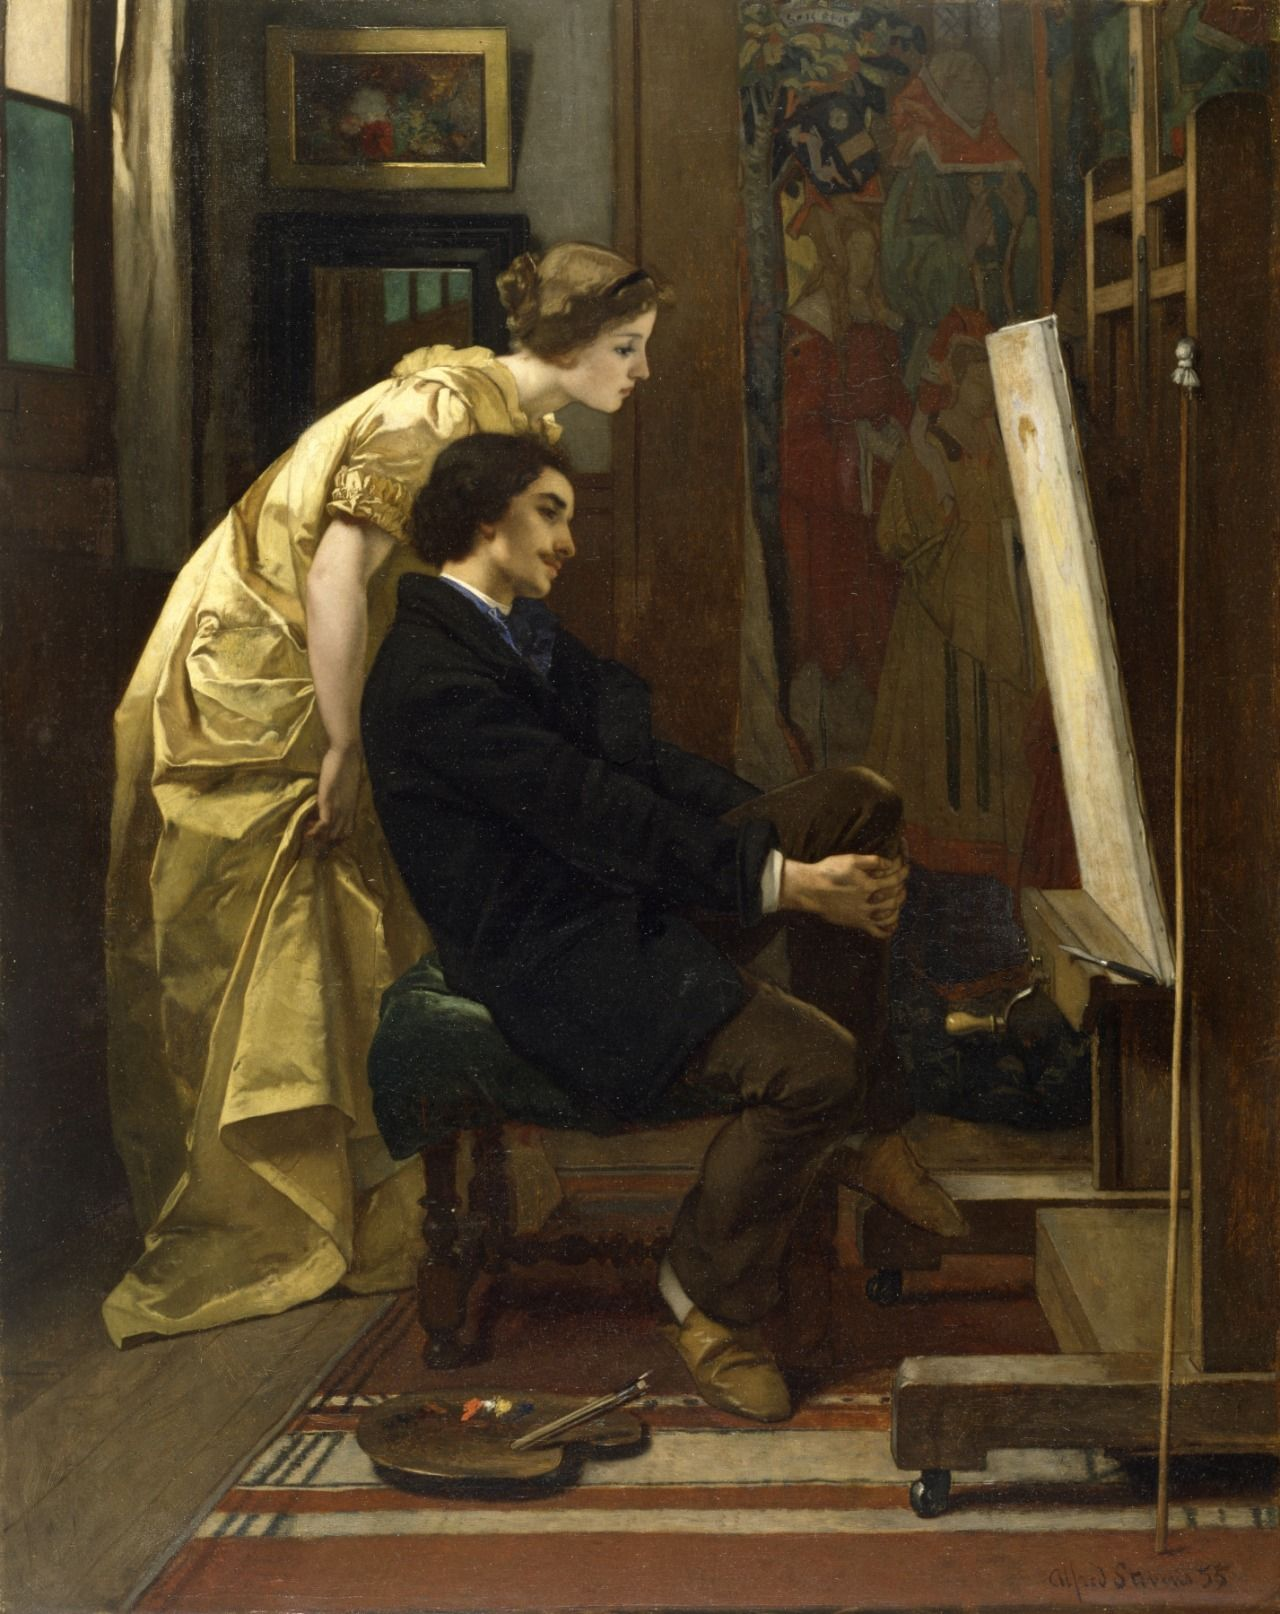 Painter and his Model, 1855 by Alfred Stevens